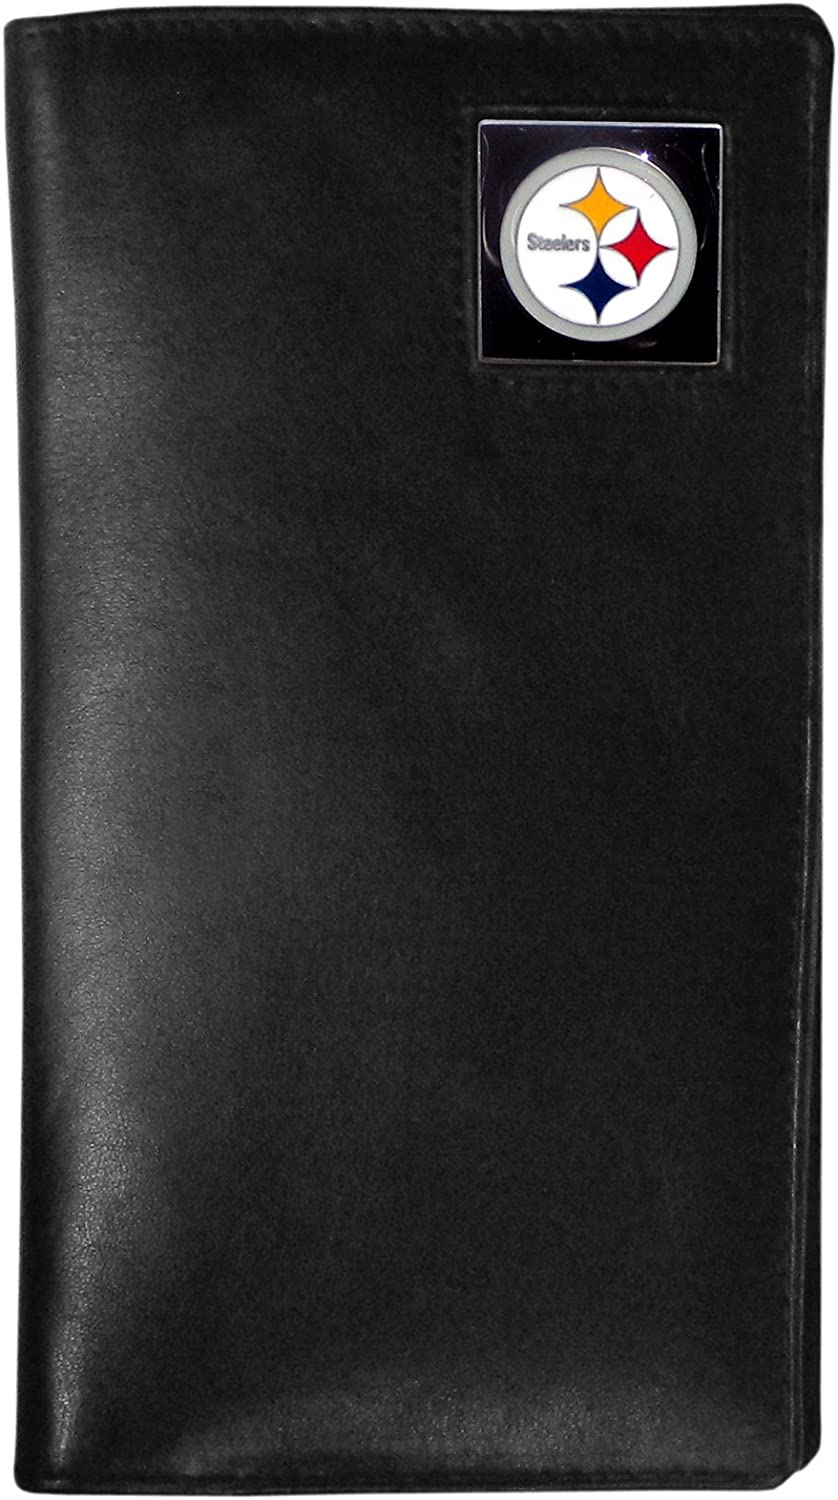 Siskiyou NFL Tall Leather Wallet